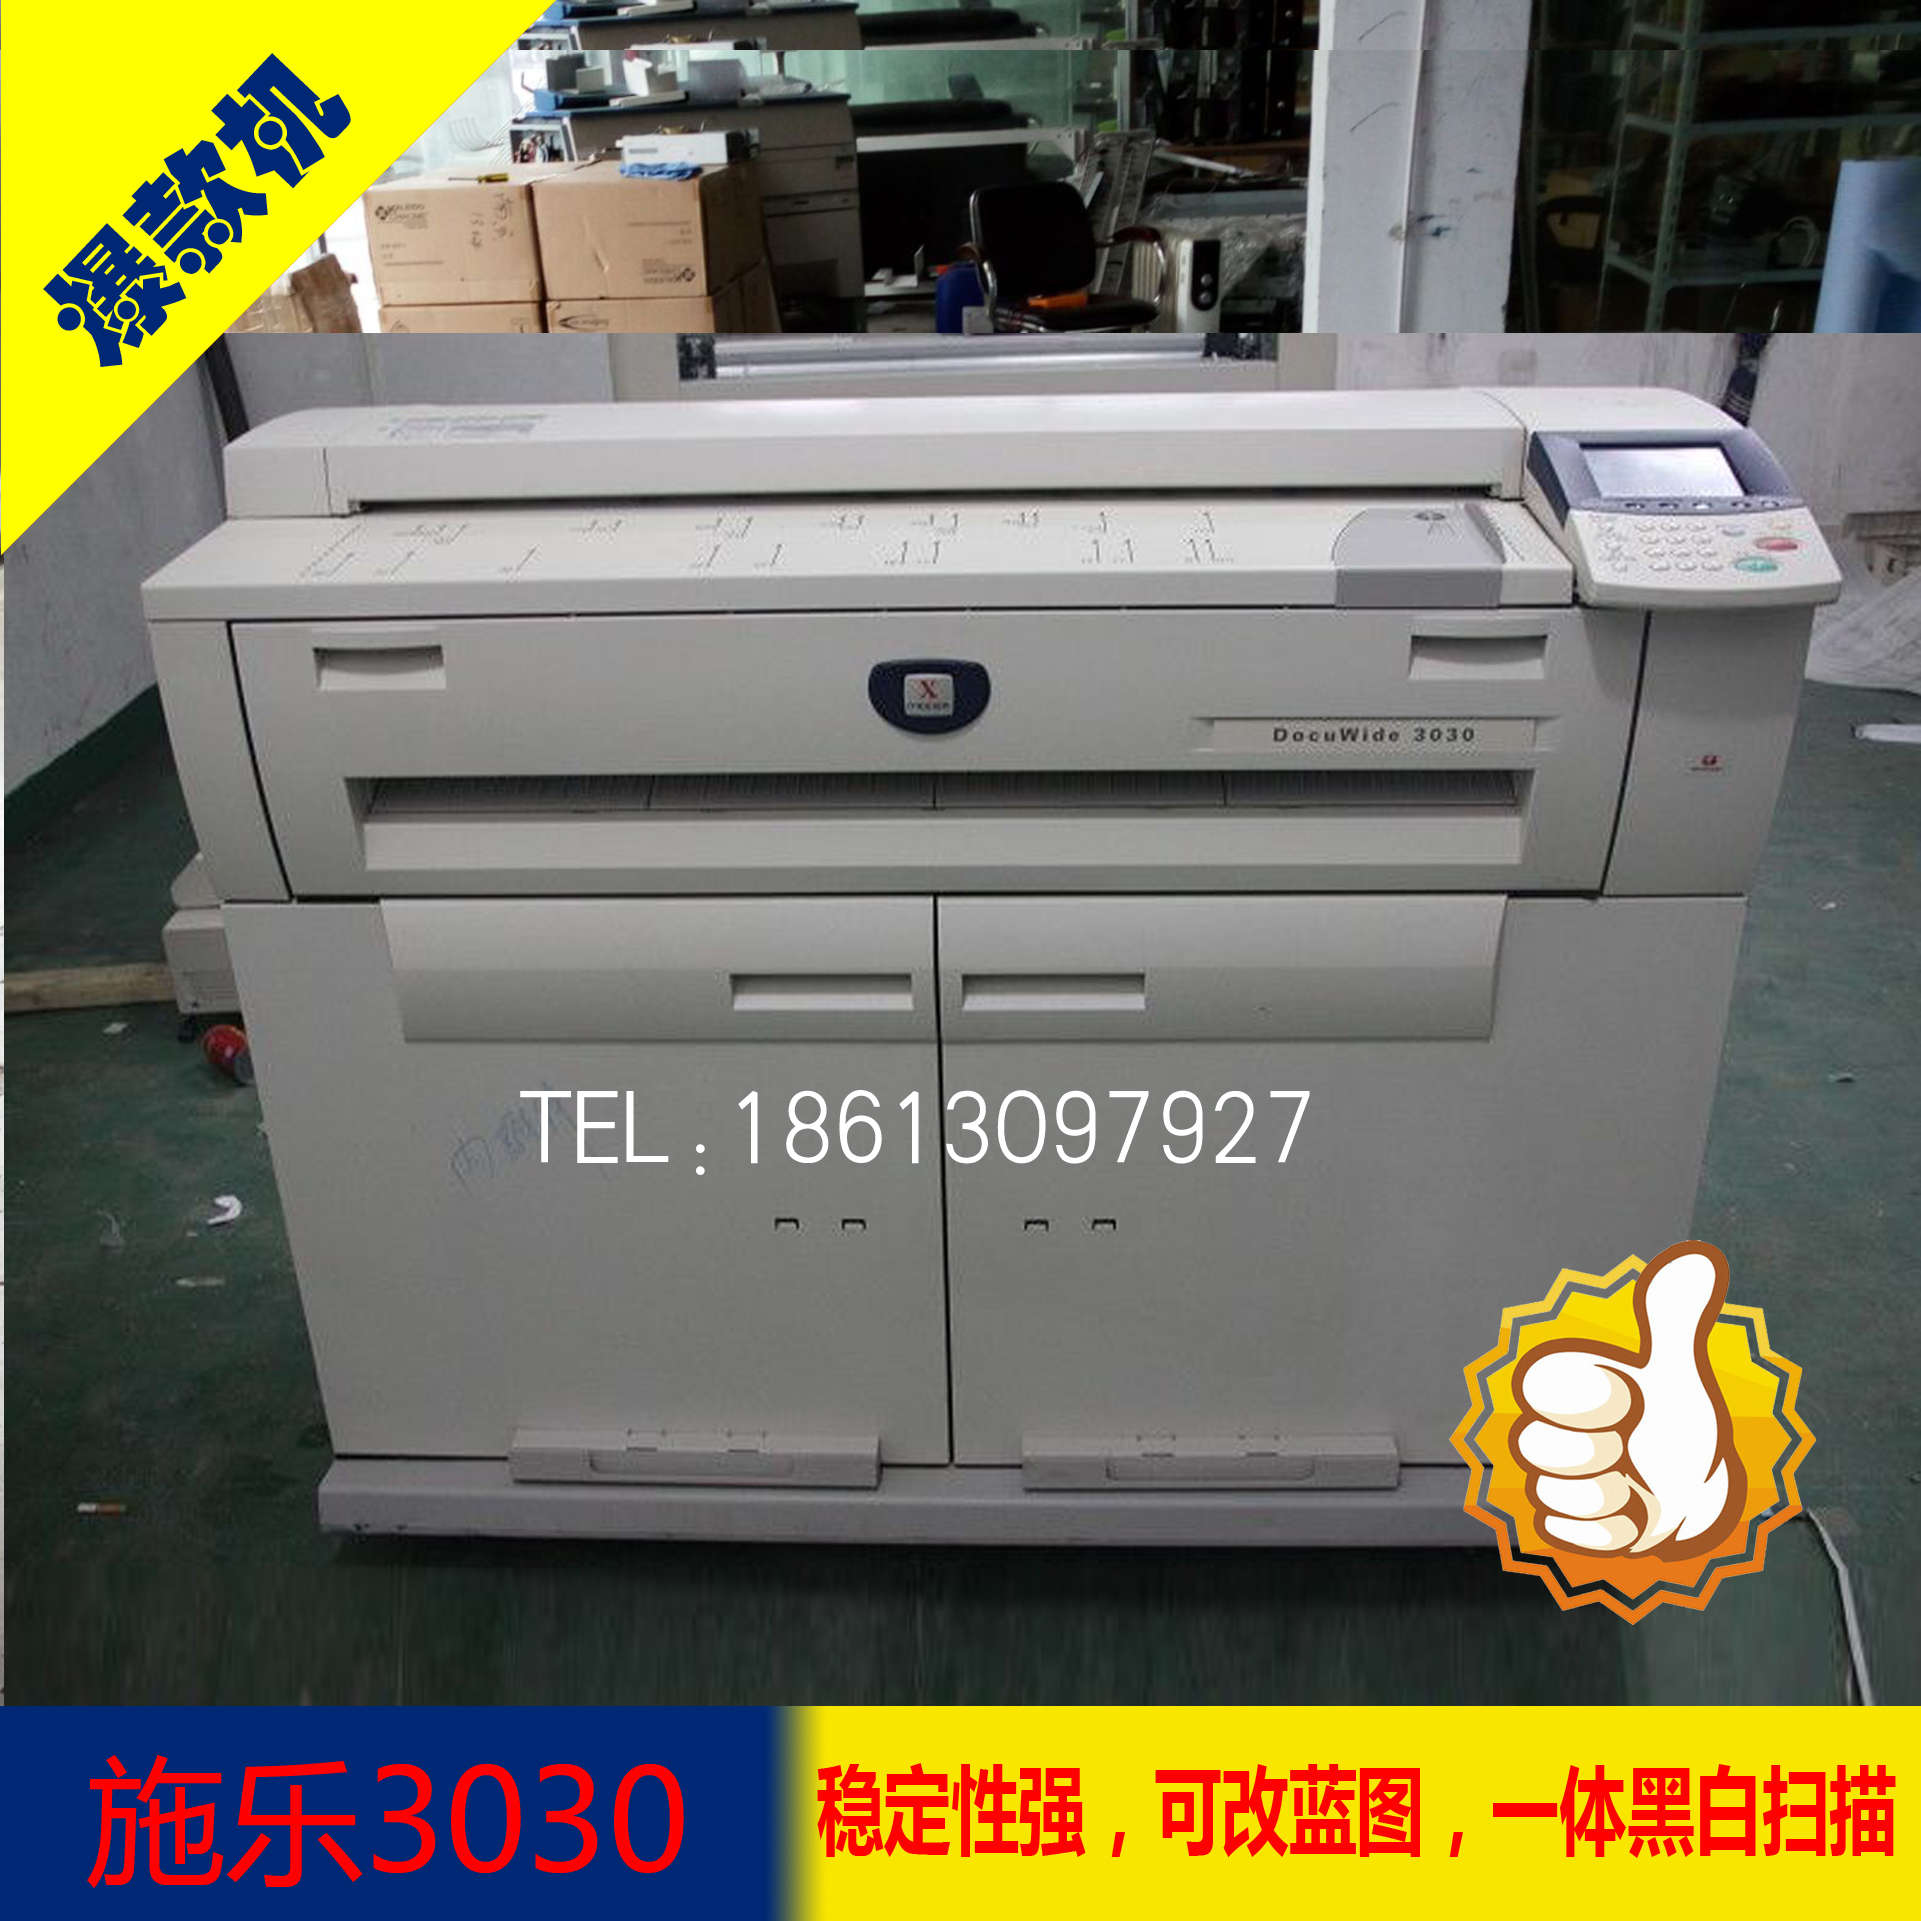 Tracing paper building a large figure printer dw6204 laser blueprint a0 tracing paper building a large figure printer dw6204 laser blueprint machine xerox 3030 engineering copier malvernweather Image collections